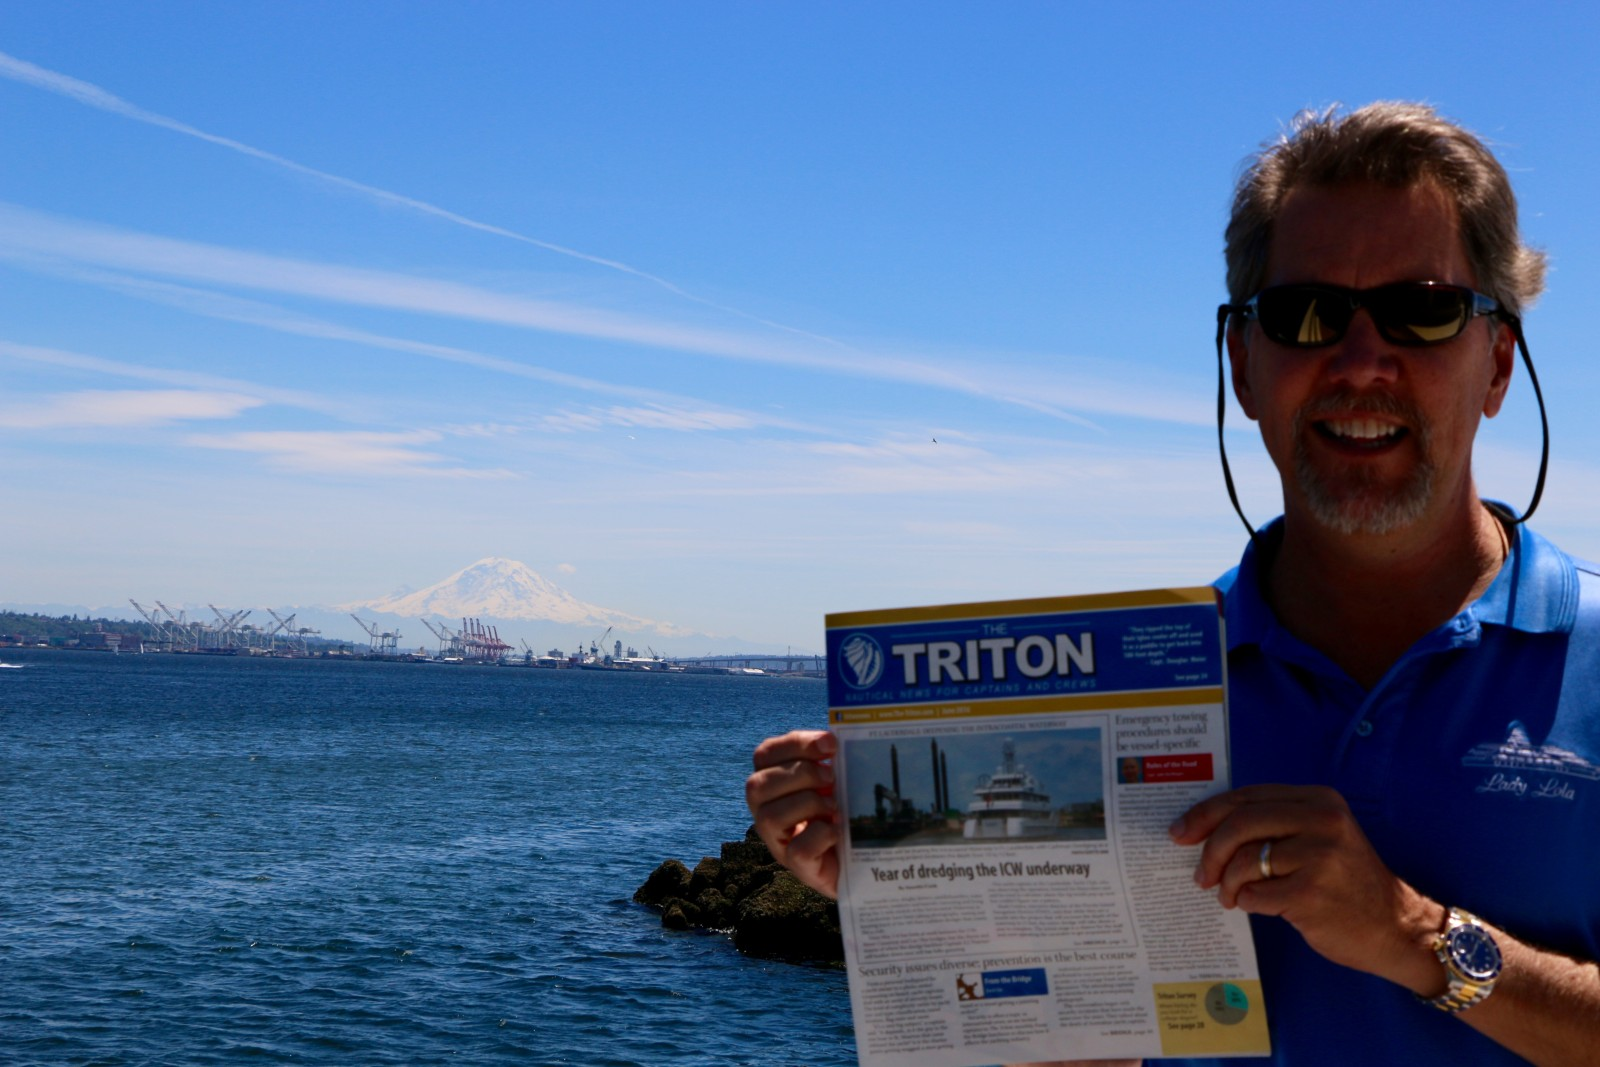 Capt. Mac McDonald of the 205-foot Oceanco M/Y Lady Lola takes his Triton to see the lovely Mt. Ranier off Seattle during a summer cruise exploring the Pacific Northwest and U.S. West Coast. Hope you have many more cloudless days, Mac.